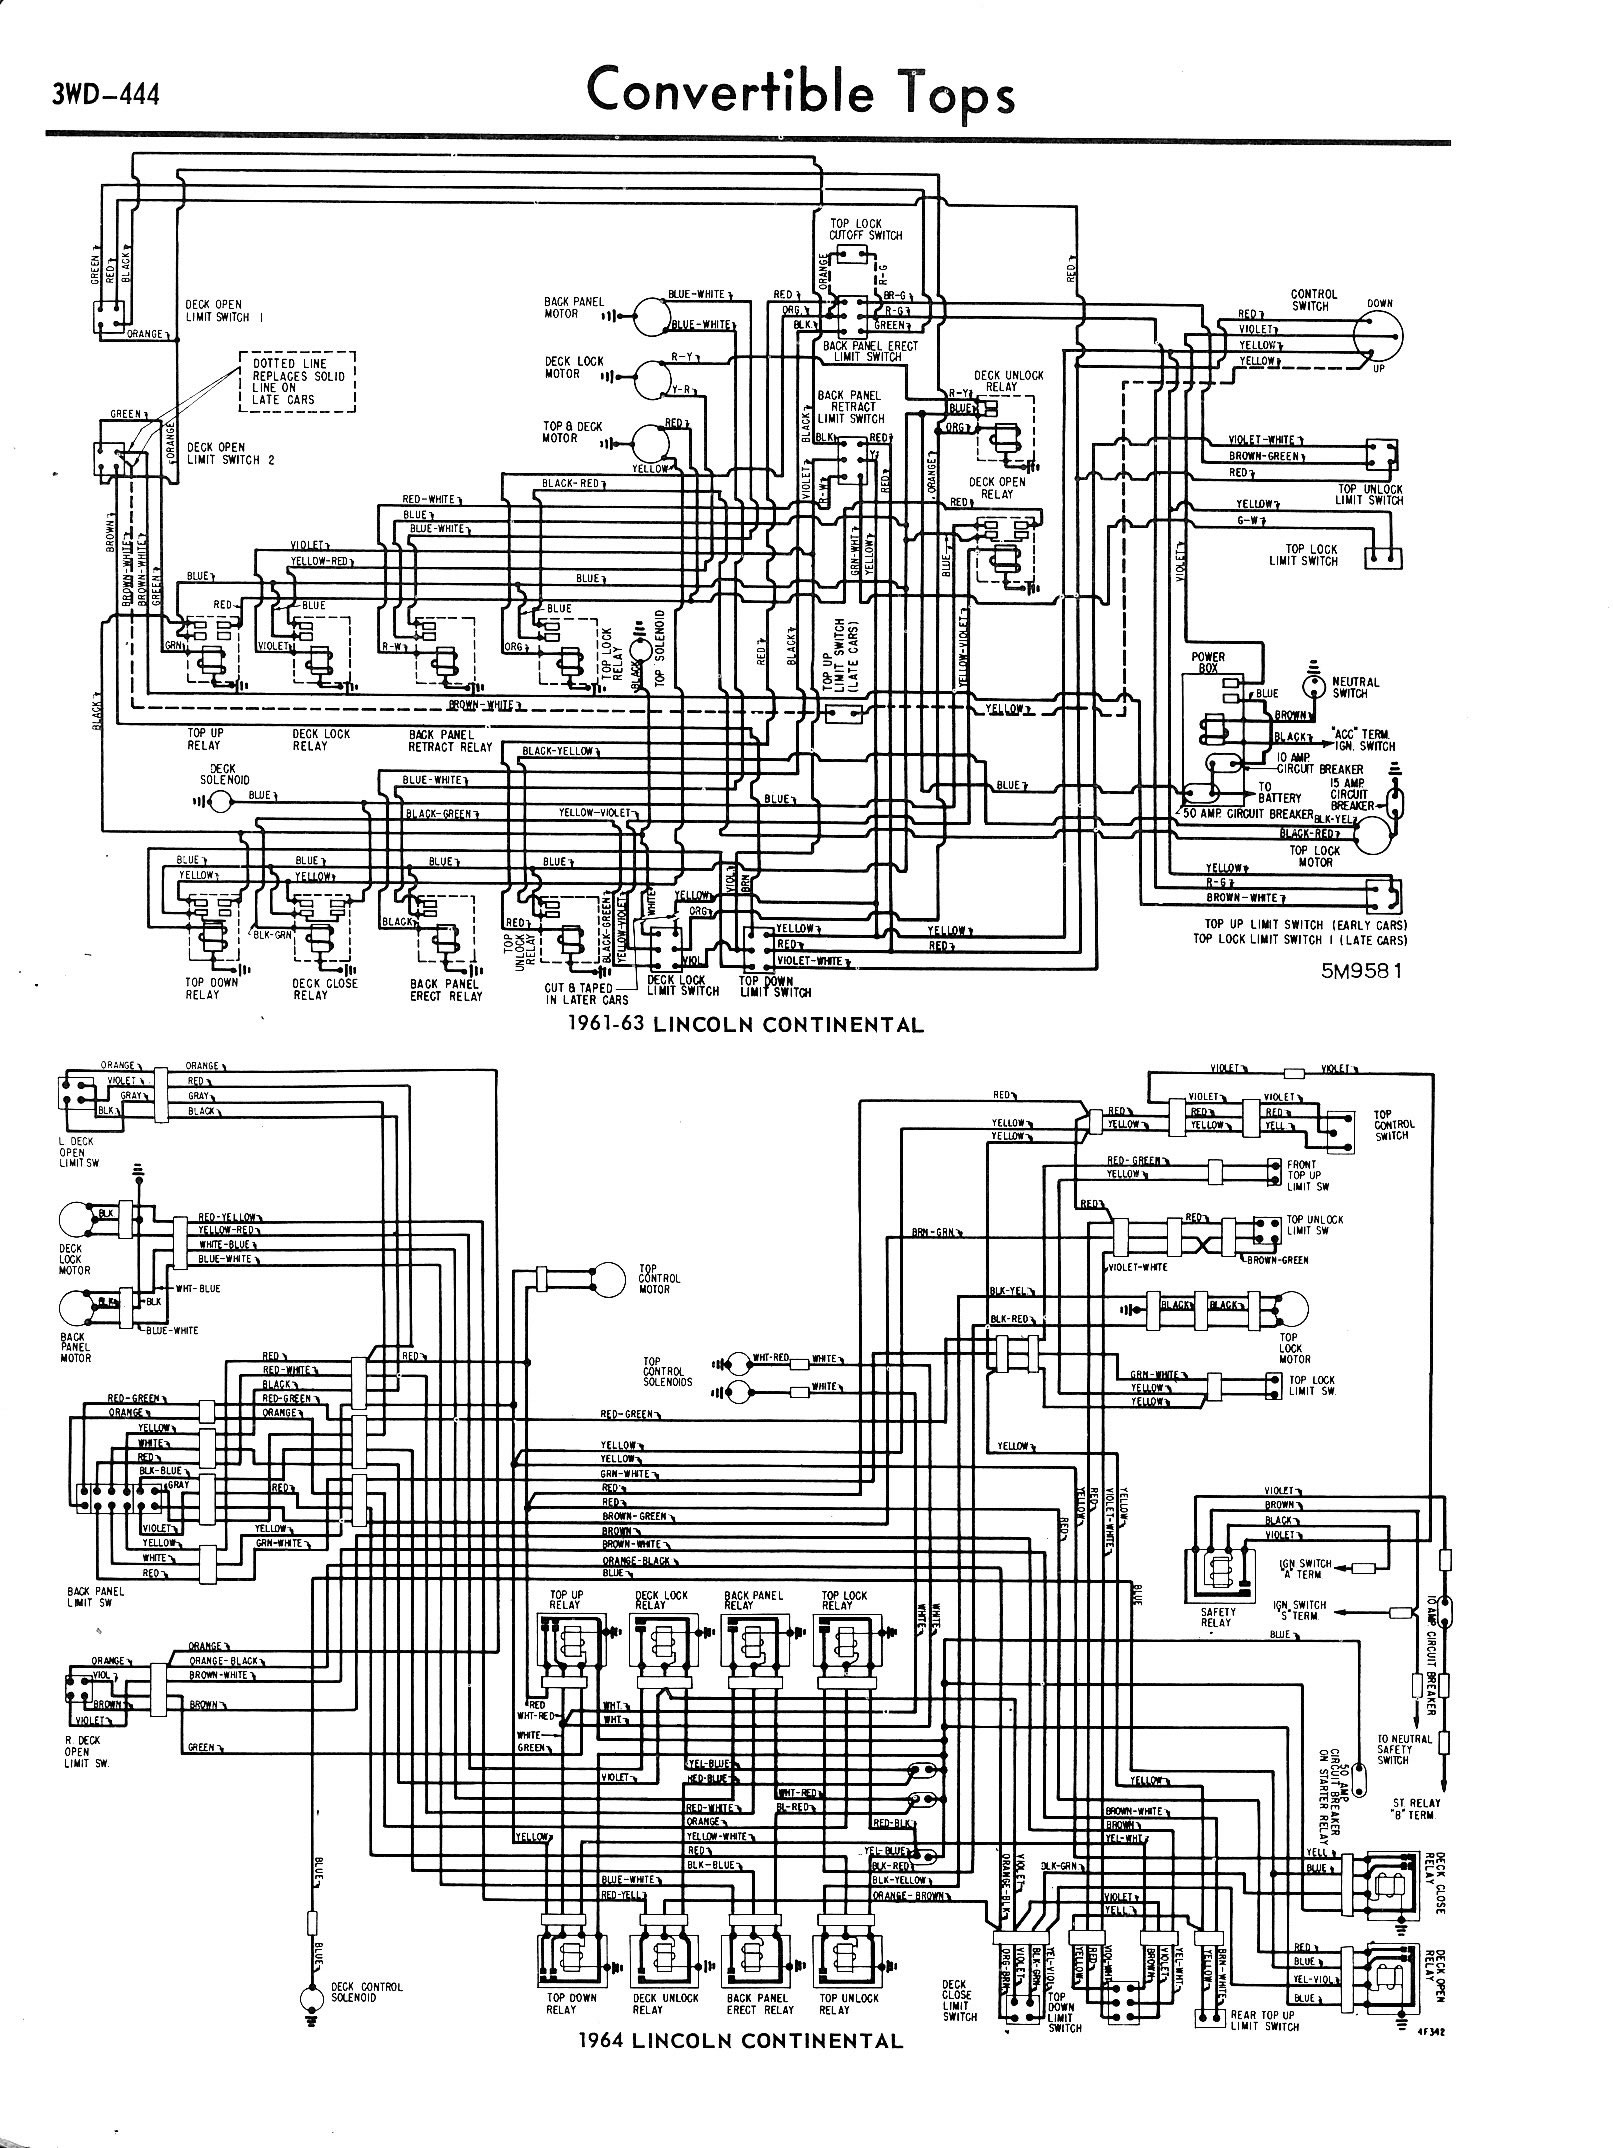 Wd Jpg on 1957 Thunderbird Wiring Diagram